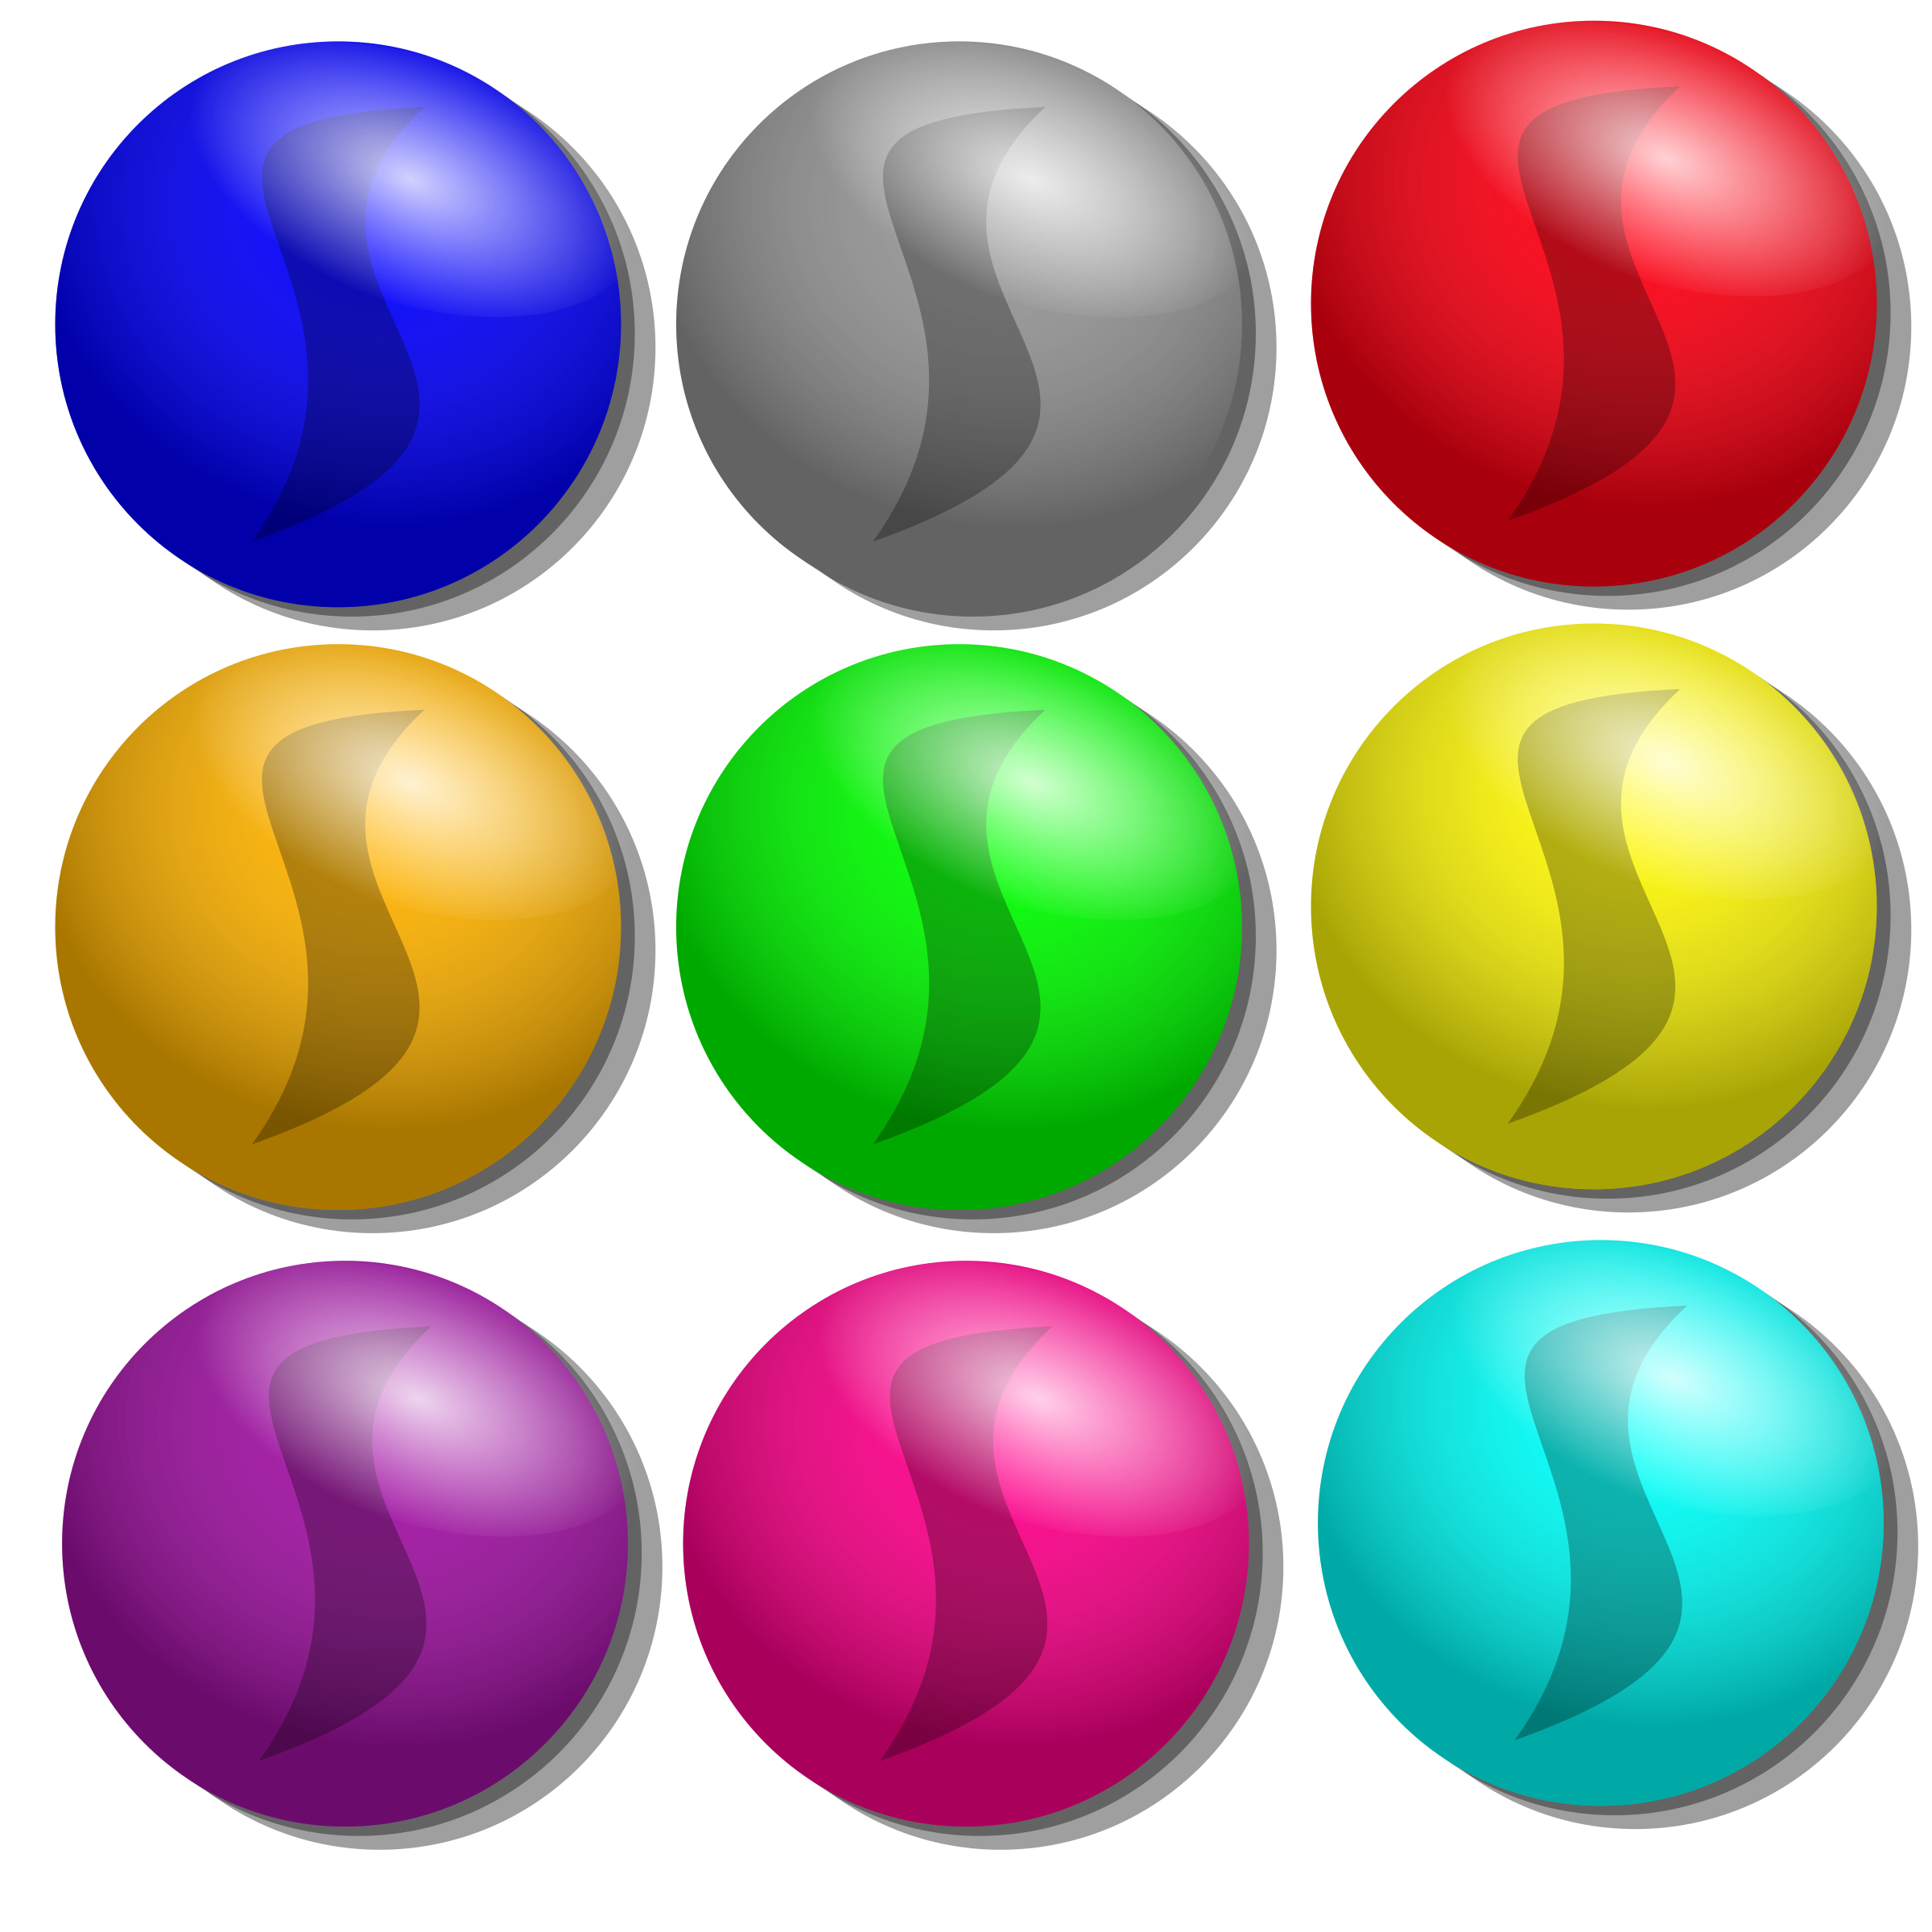 Game dots icons png. Marbles clipart ball clear